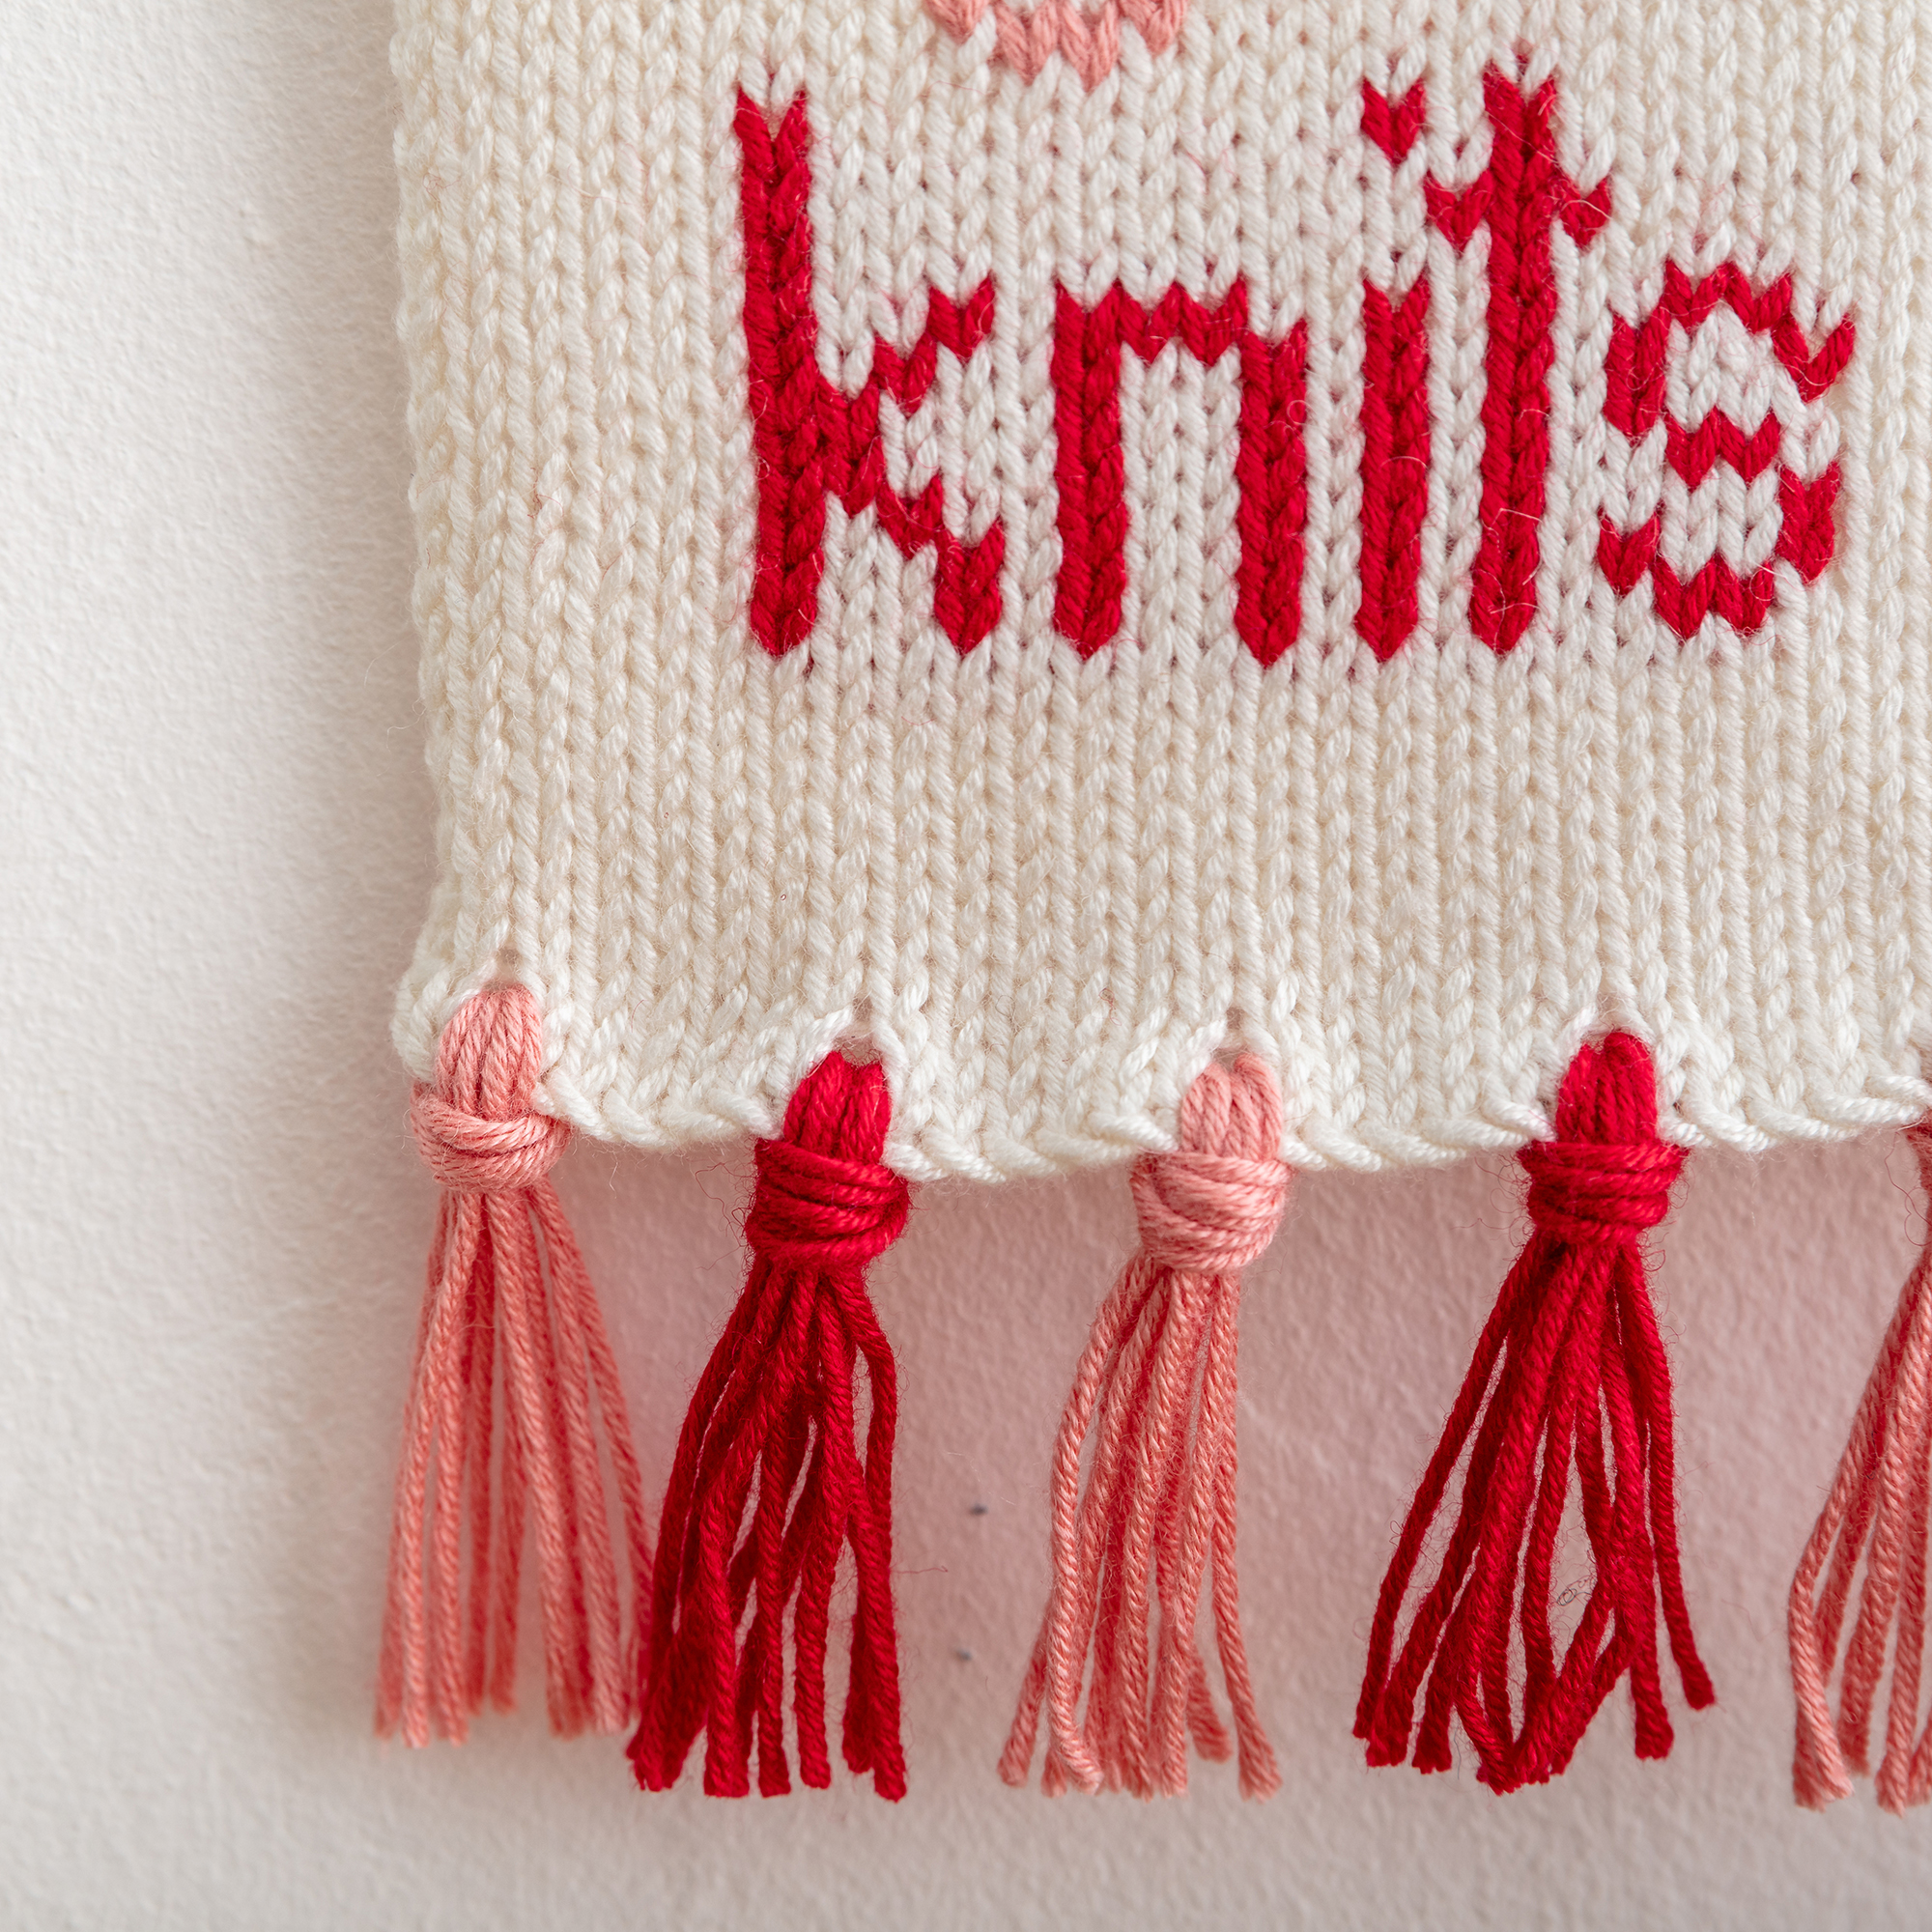 tassels of show me your knits knitted wall hanging